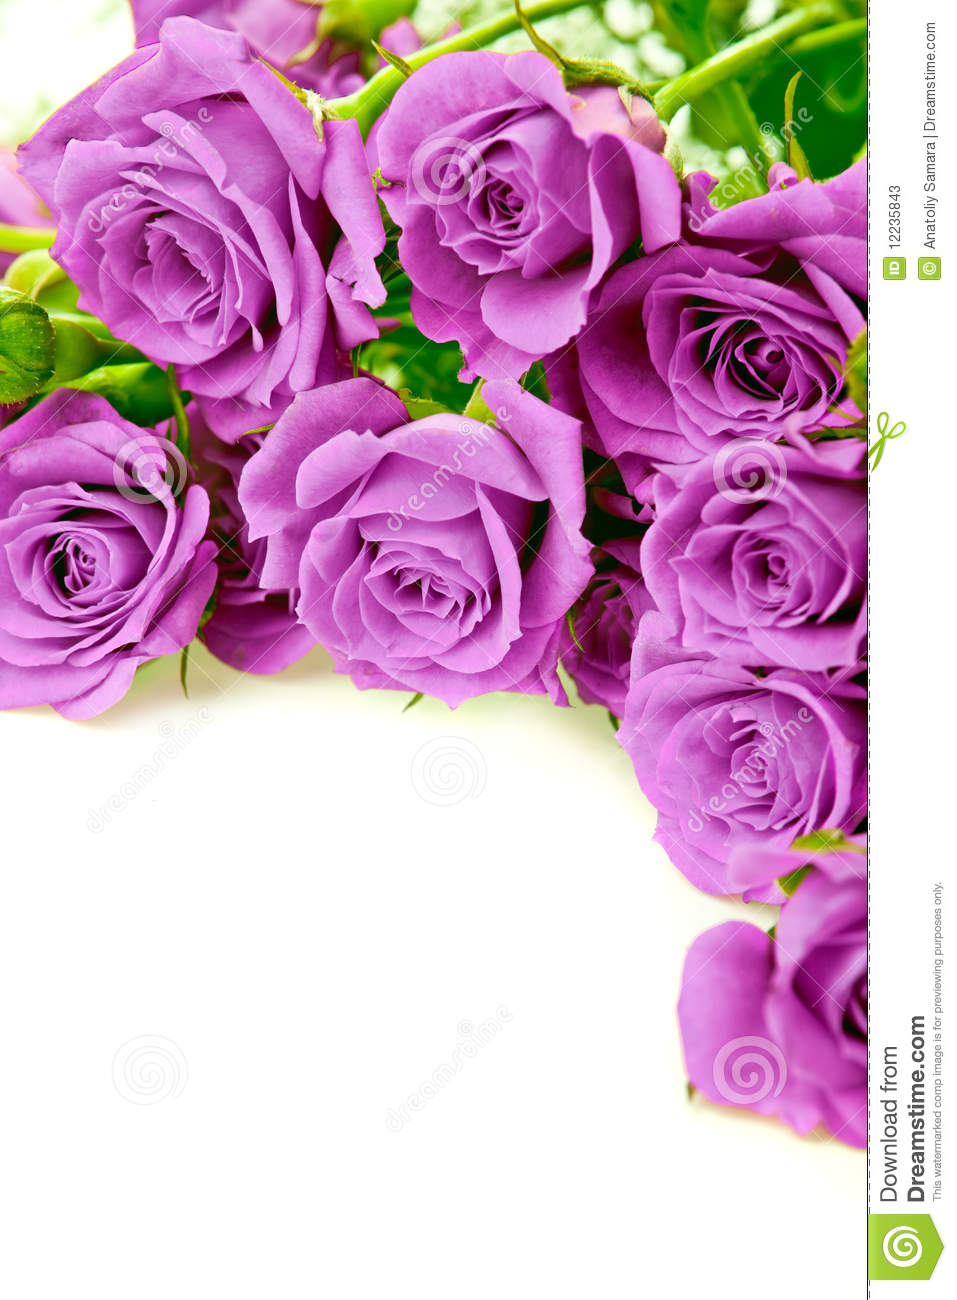 3d Geometric Shapes Wallpaper White Purple Roses Stock Image Image Of Background Blossom